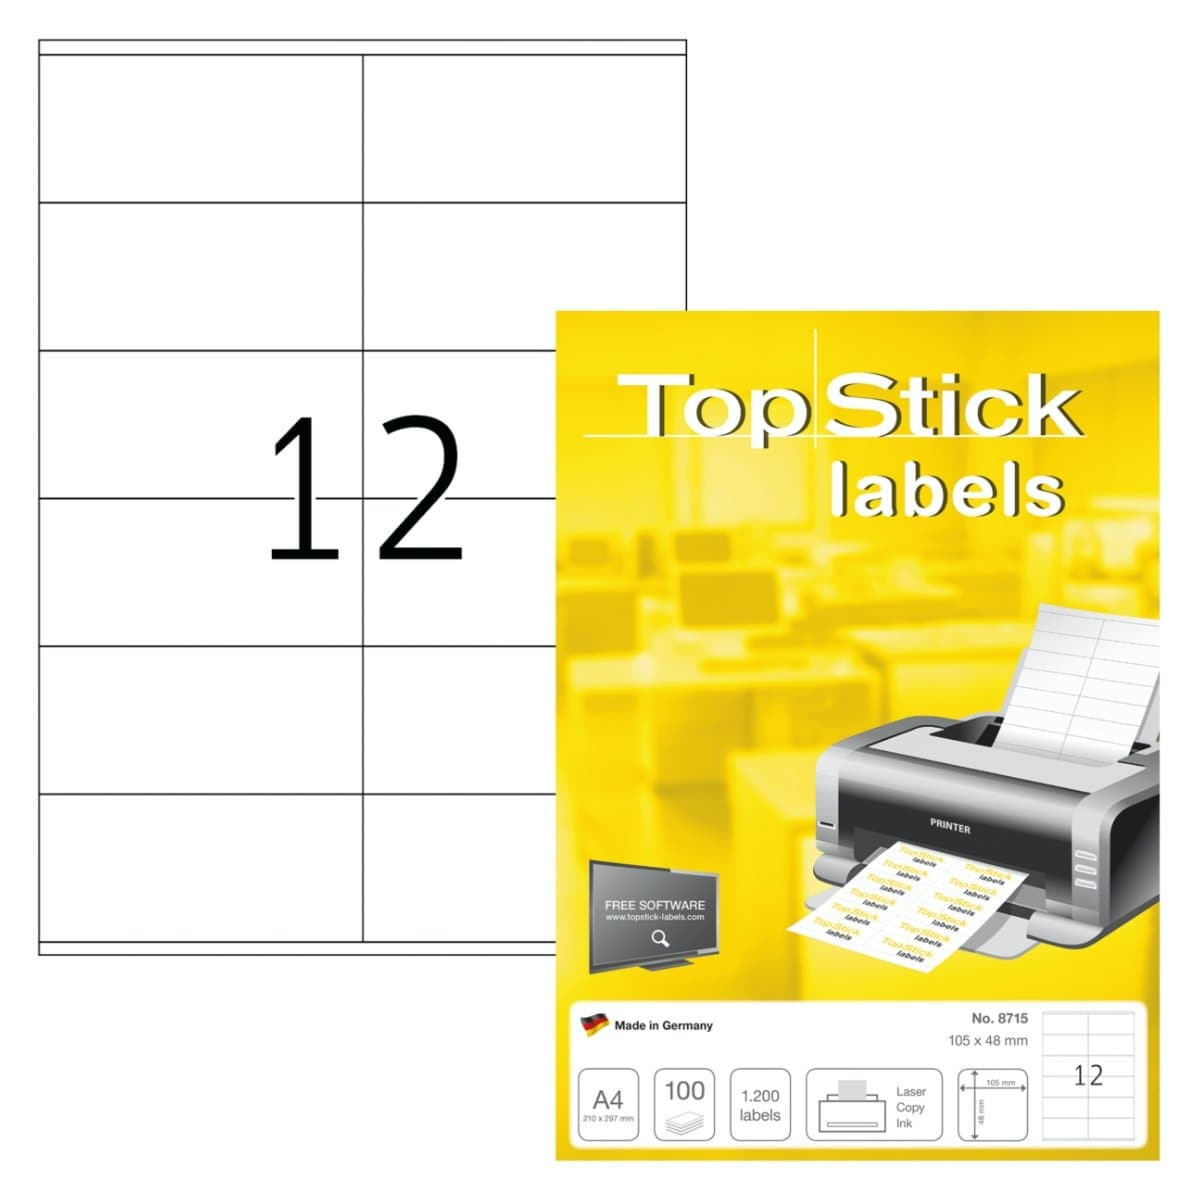 TopStick labels 12 labels/sheet, sharp corners, 105 x 48 mm, 100sheets/pack, White